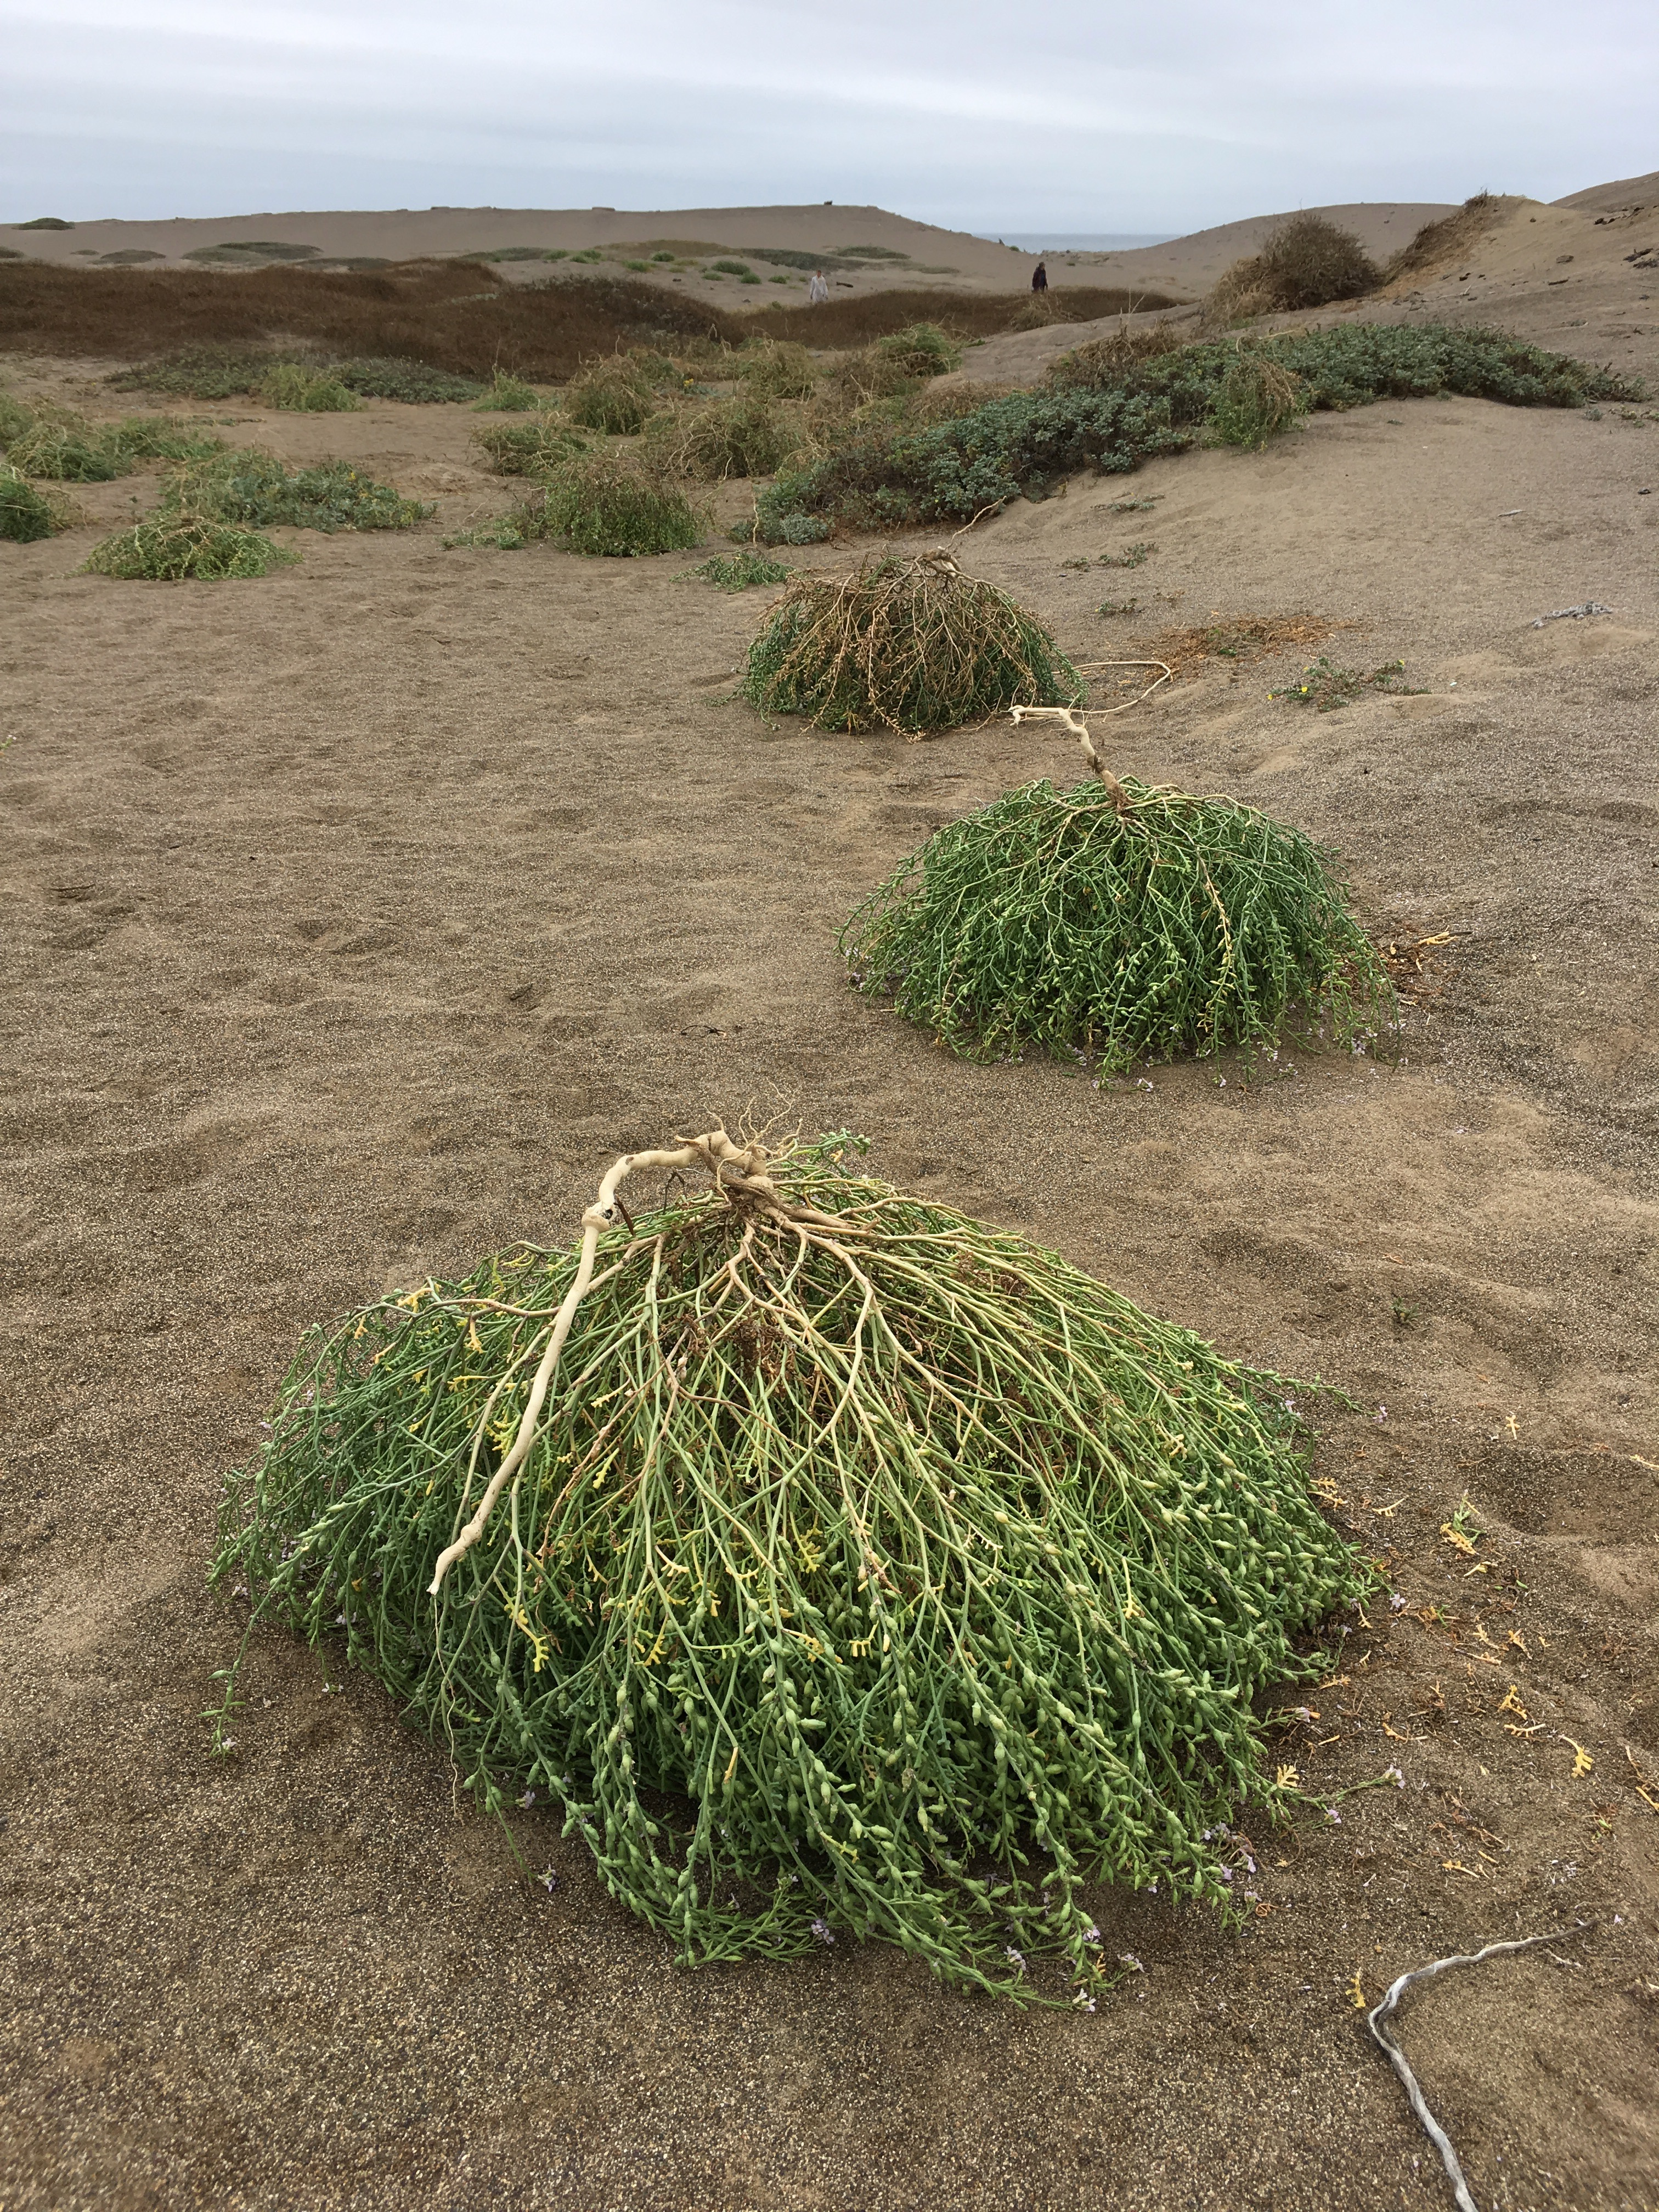 Uprooted searocket clumps lay in sand dunes